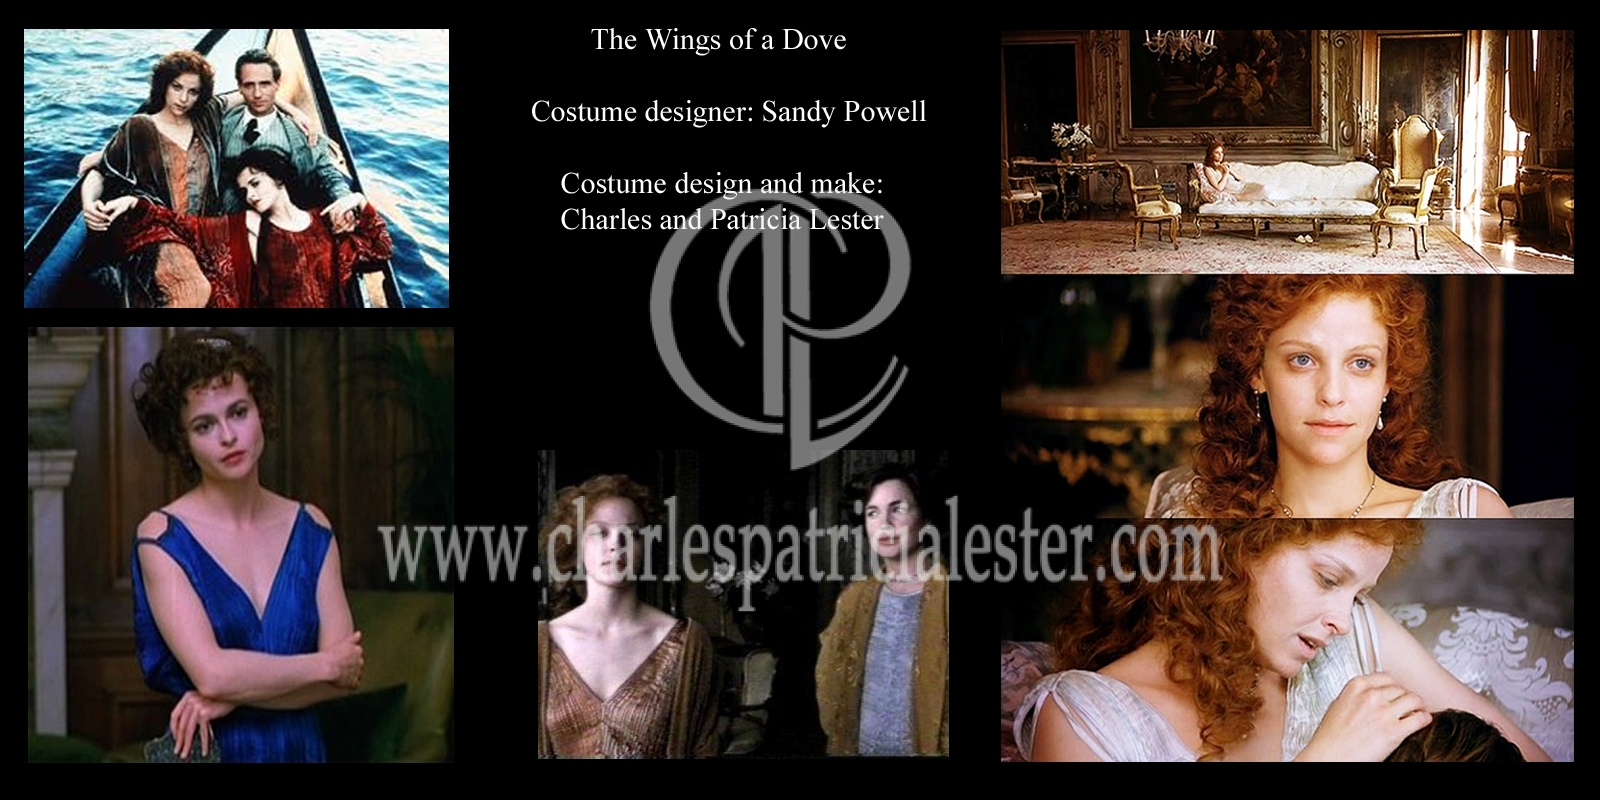 The Wings of a Dove costume designer Sandy Powell